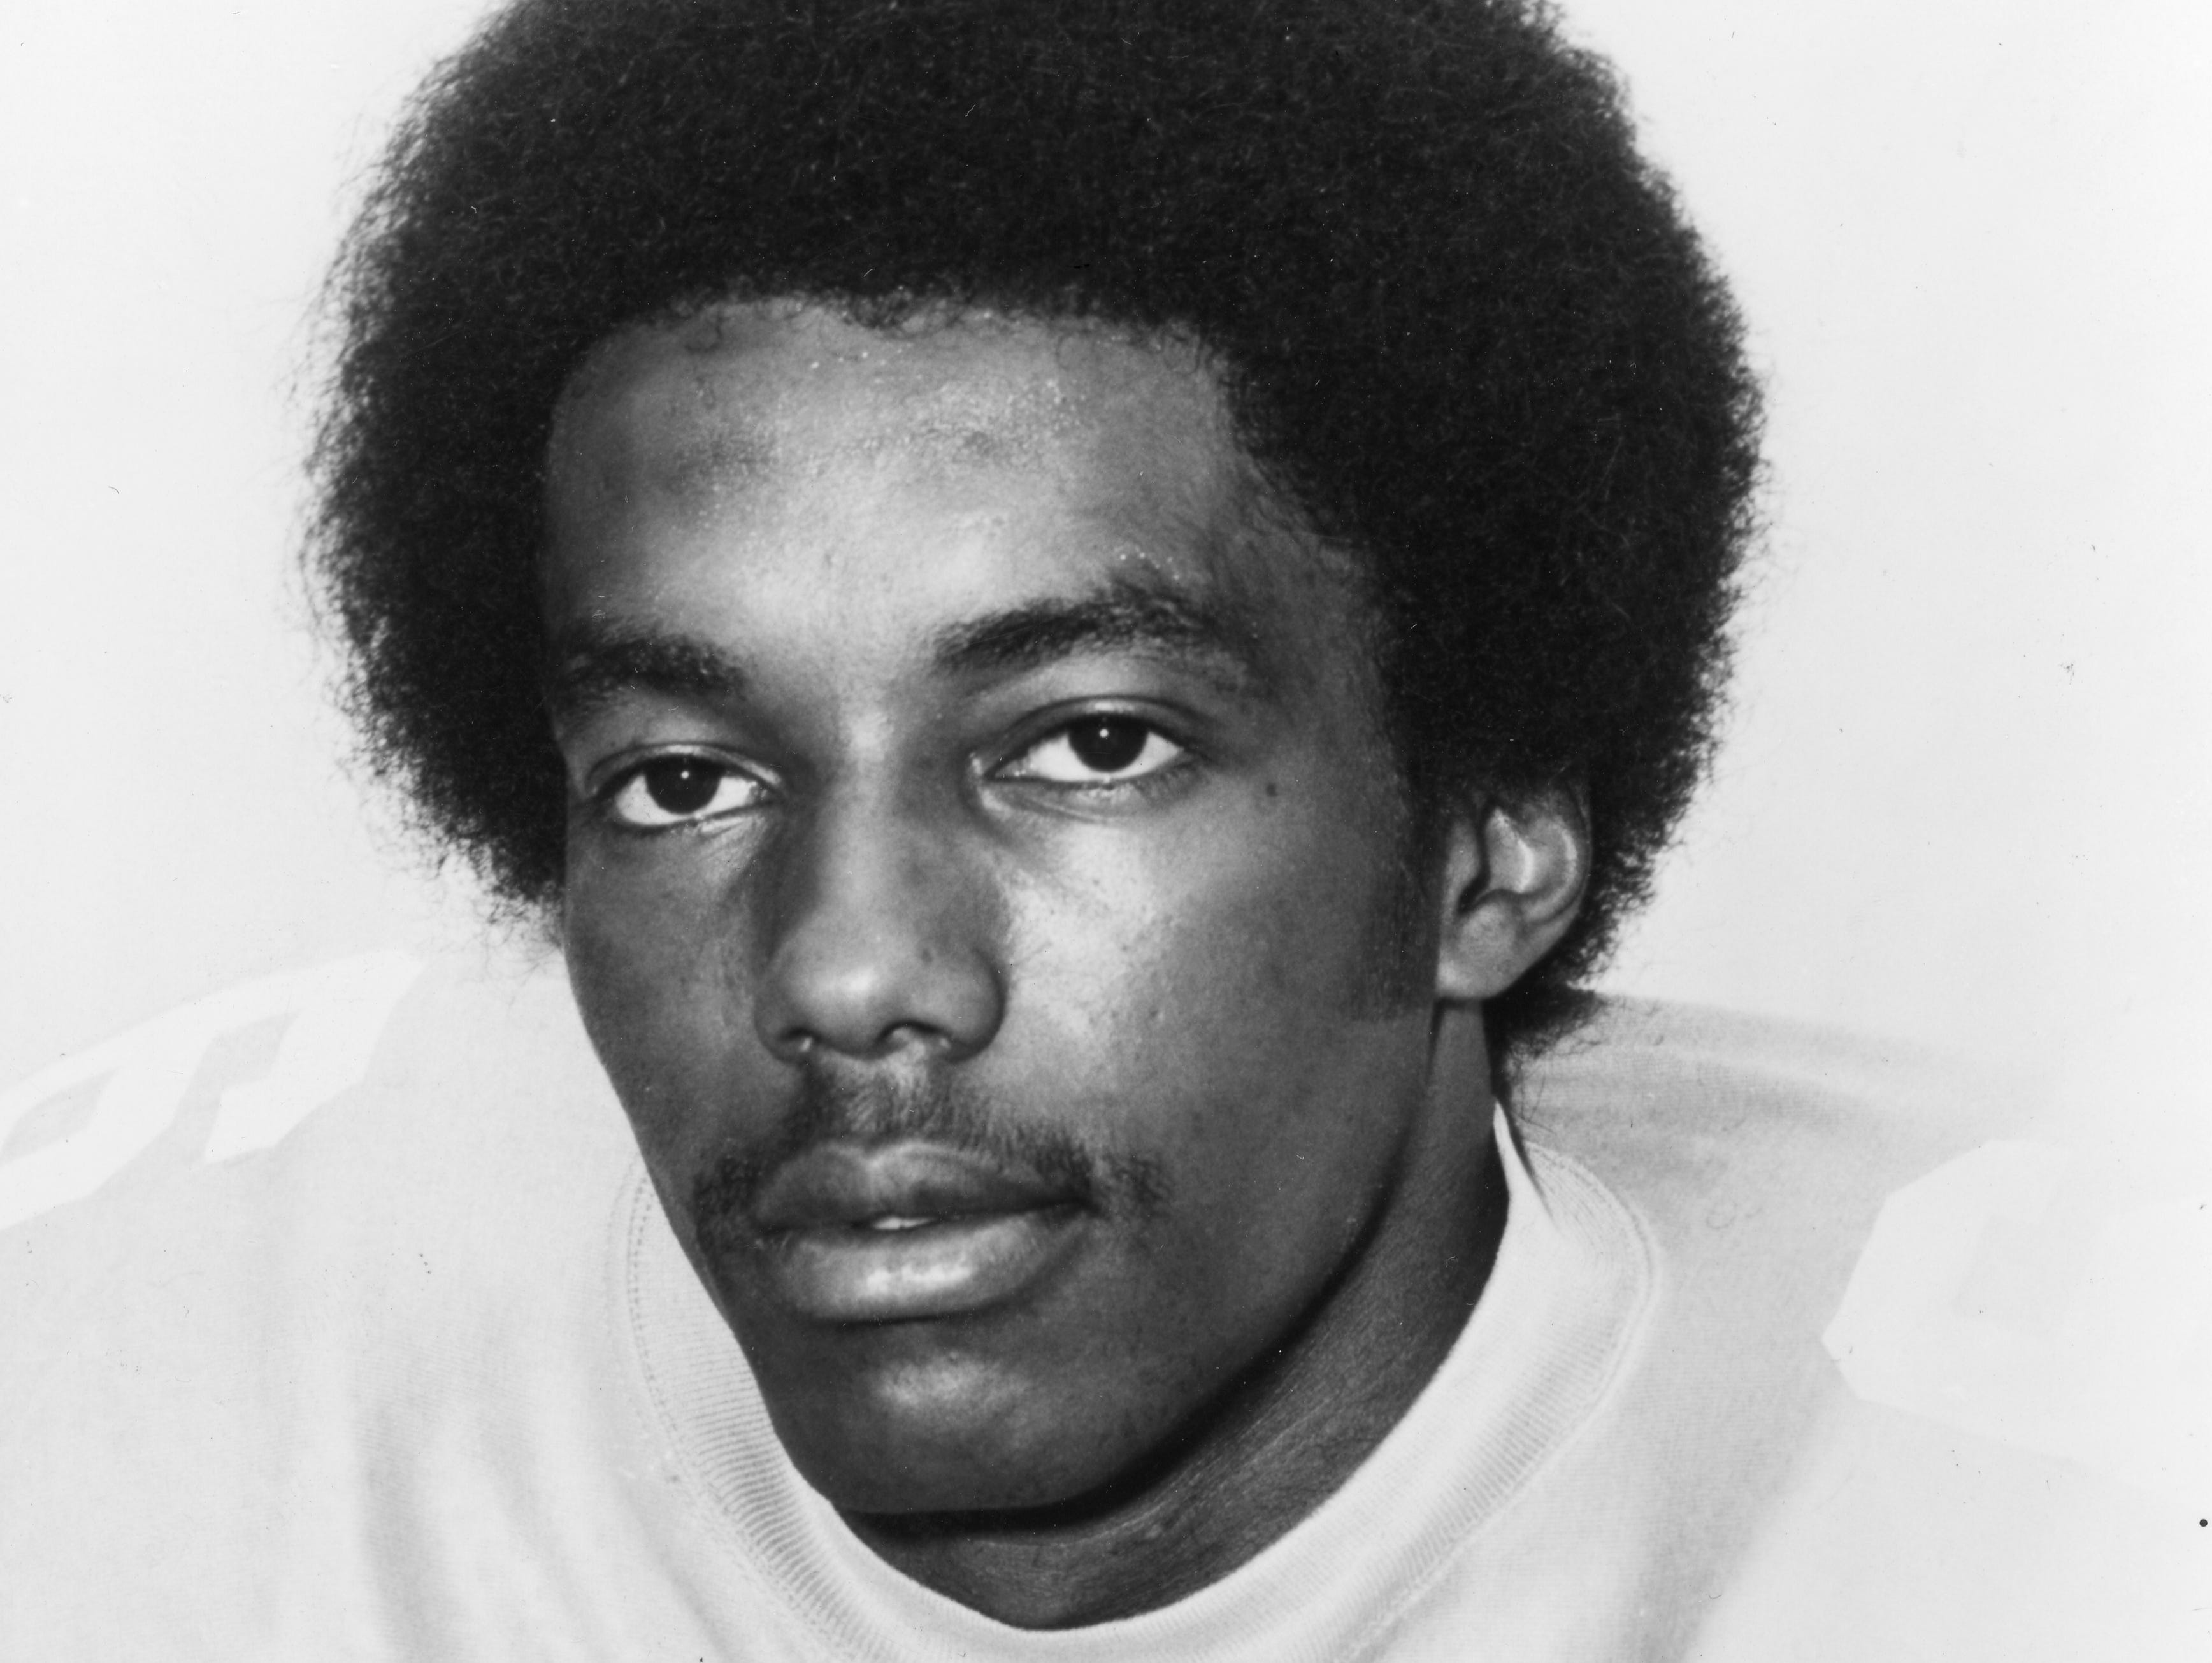 Tennessee Vols quarterback Jimmy Streater in 1977.